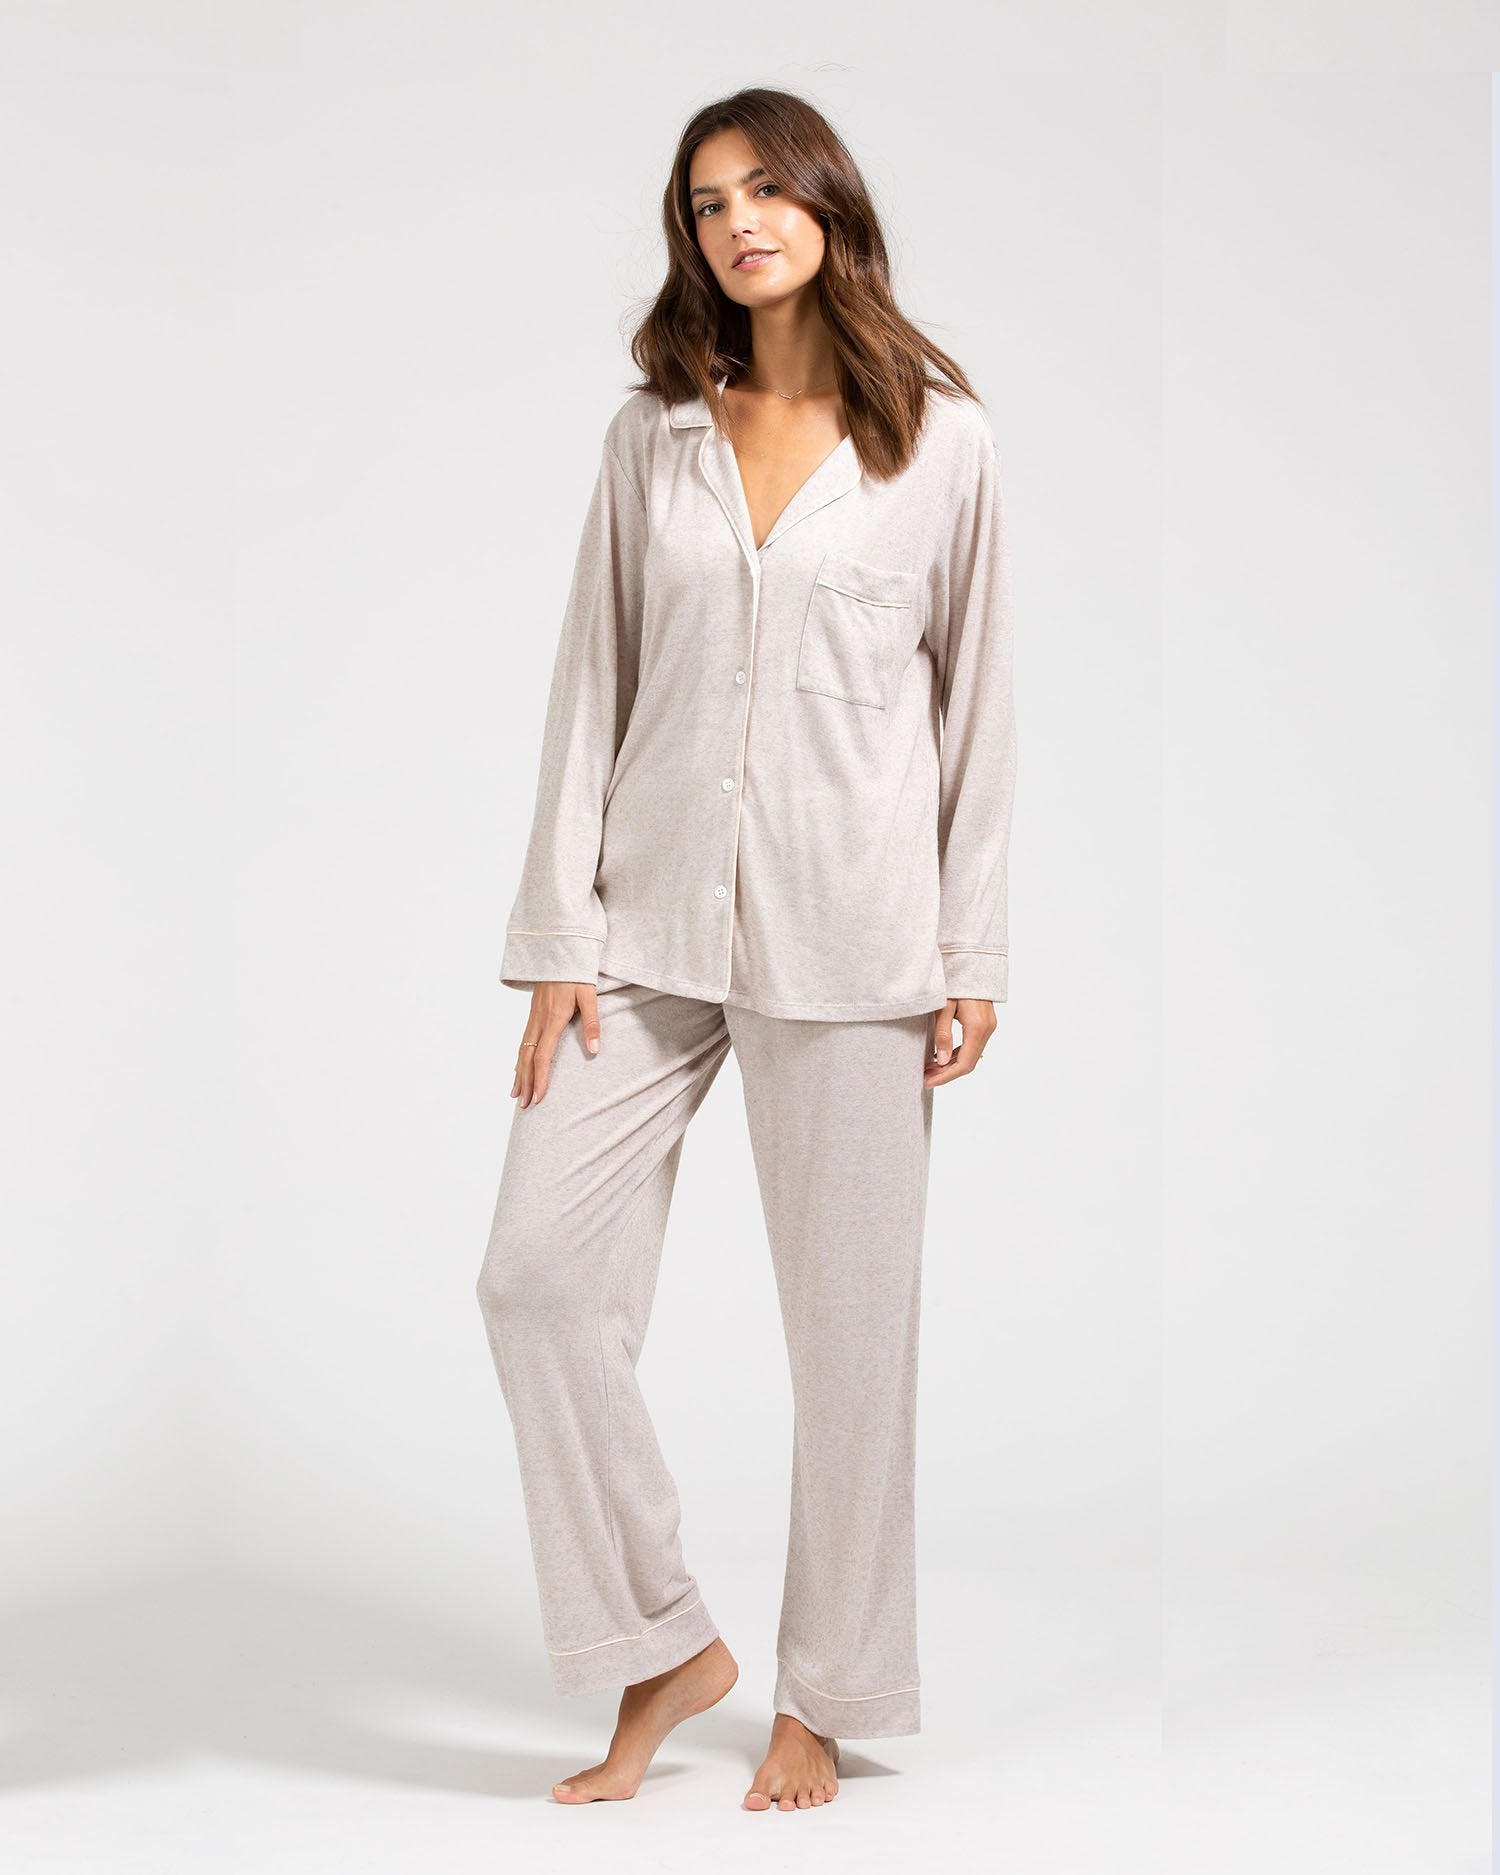 Load image into Gallery viewer, Bobby Long PJ Set - Oatmeal Heather / Bellini | Eberjey - Giftables II 2020 | Women's Socks